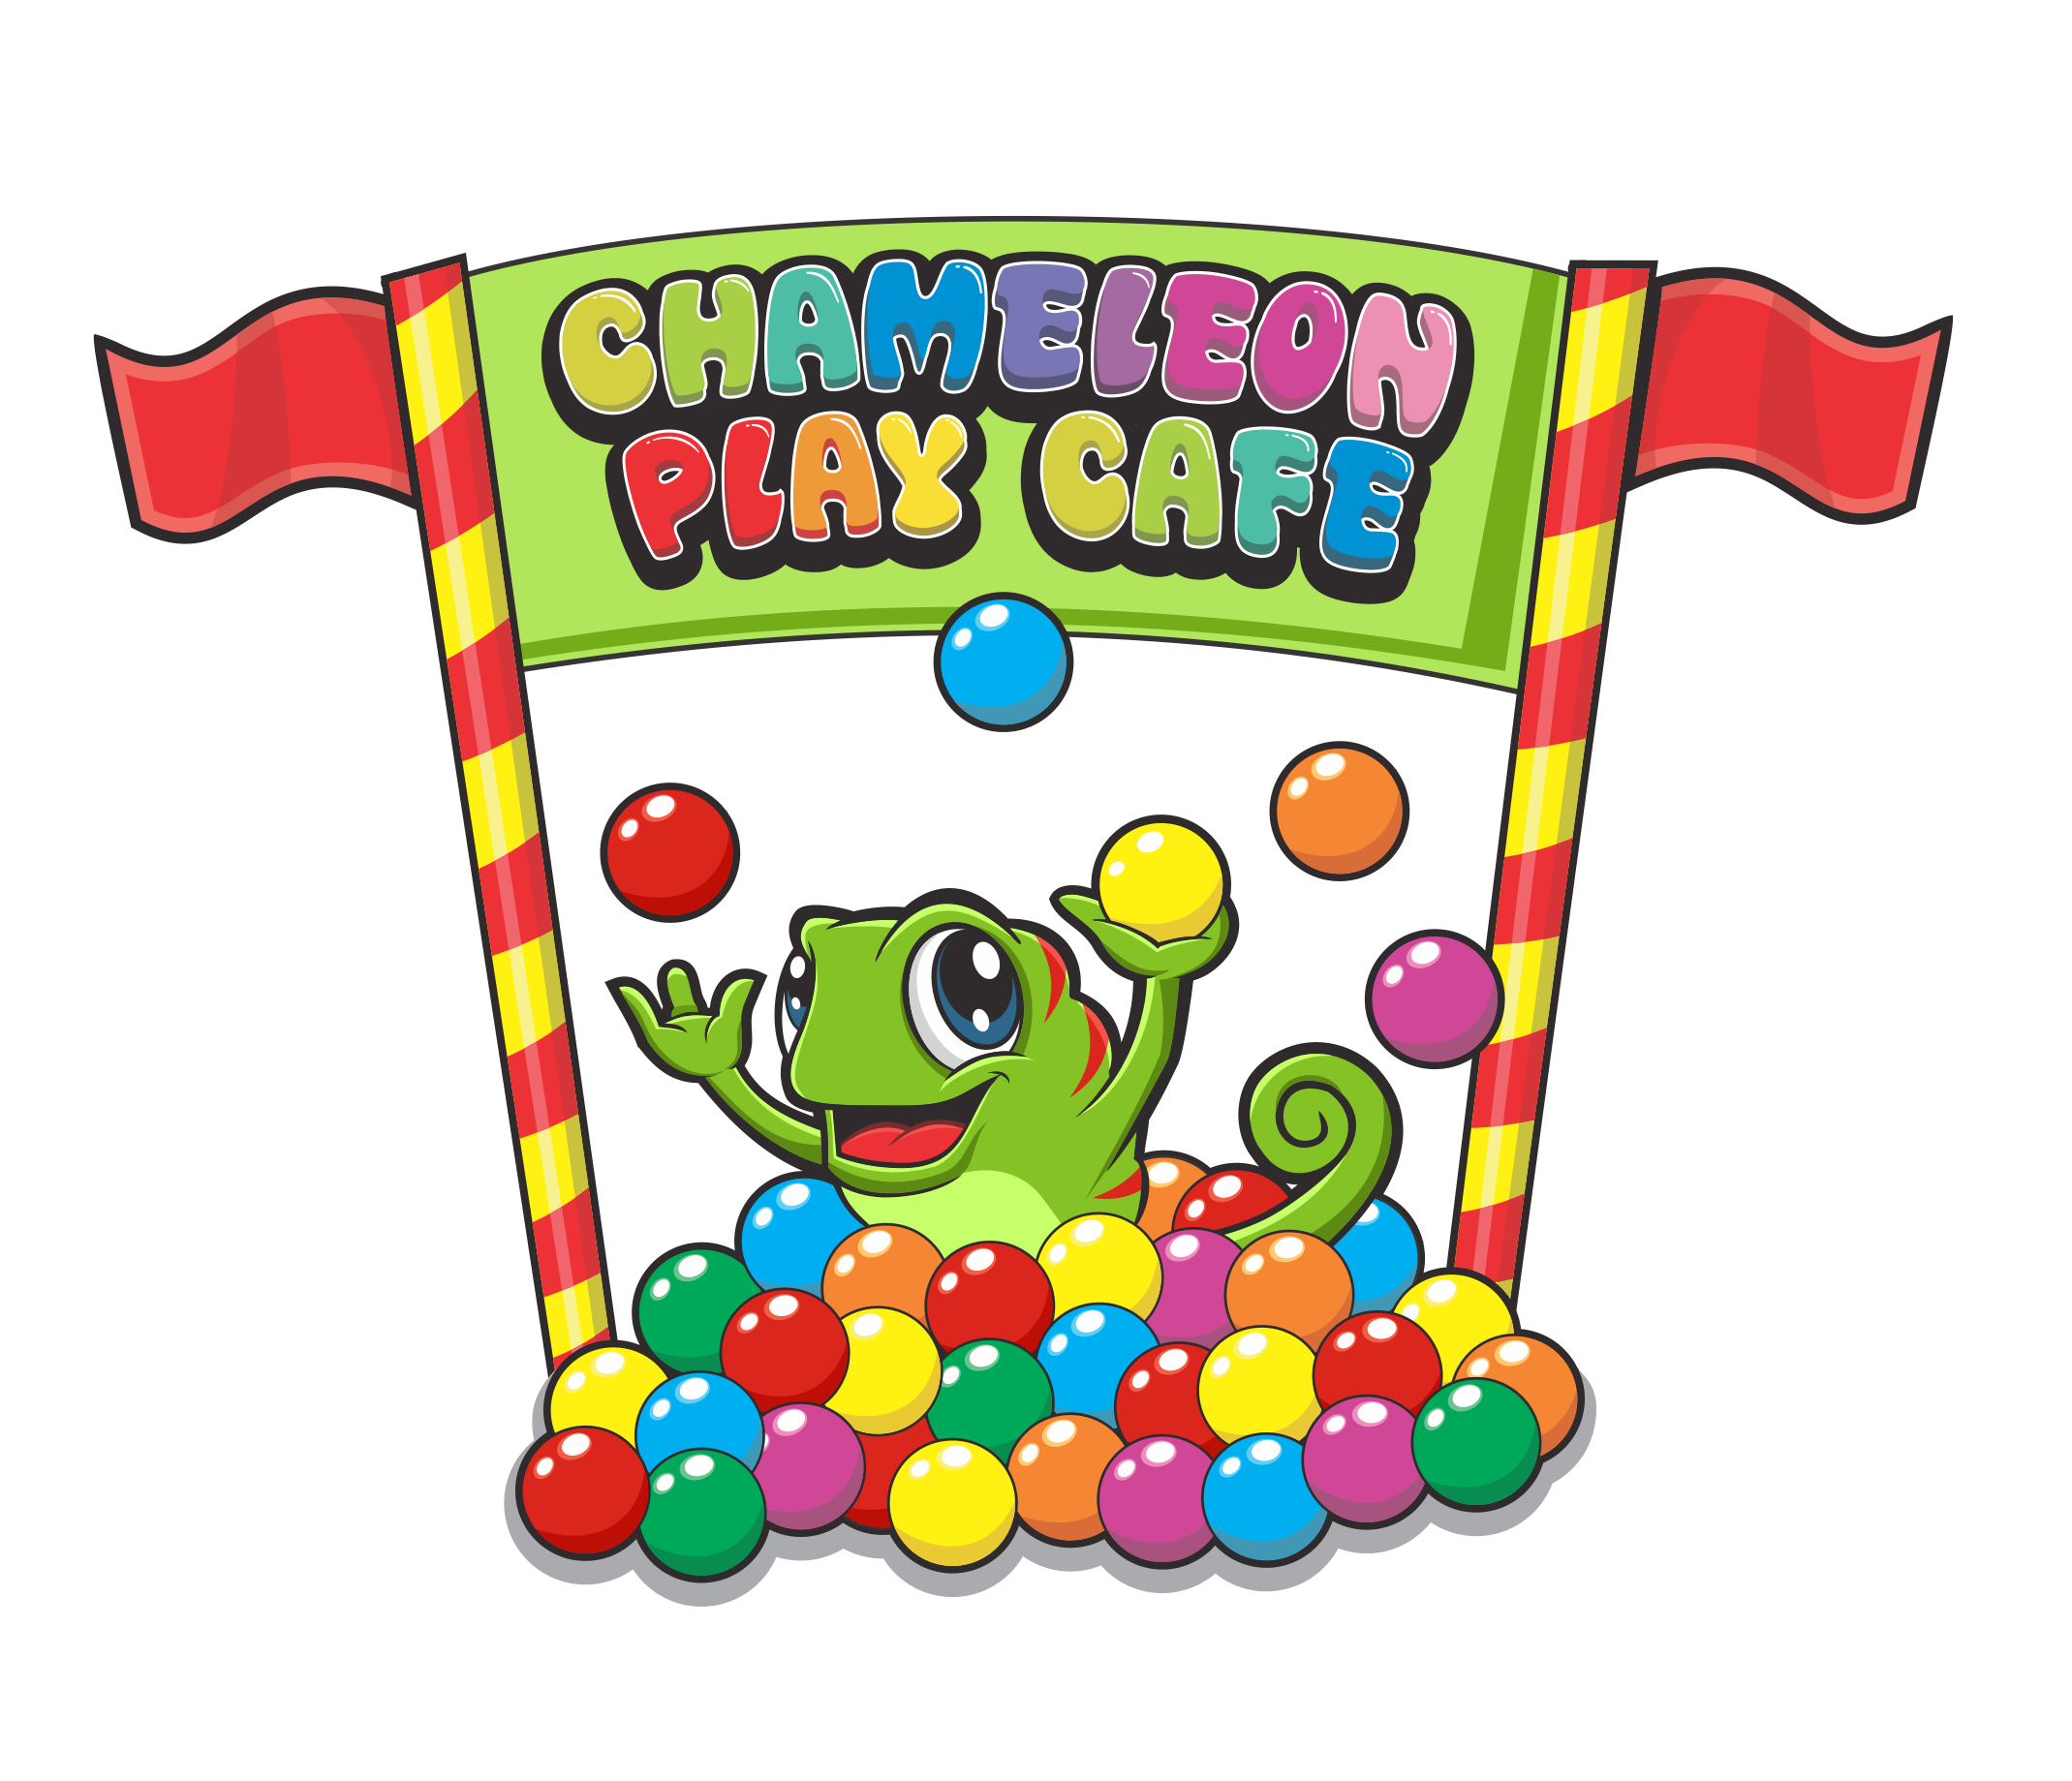 Chameleon Play Cafe